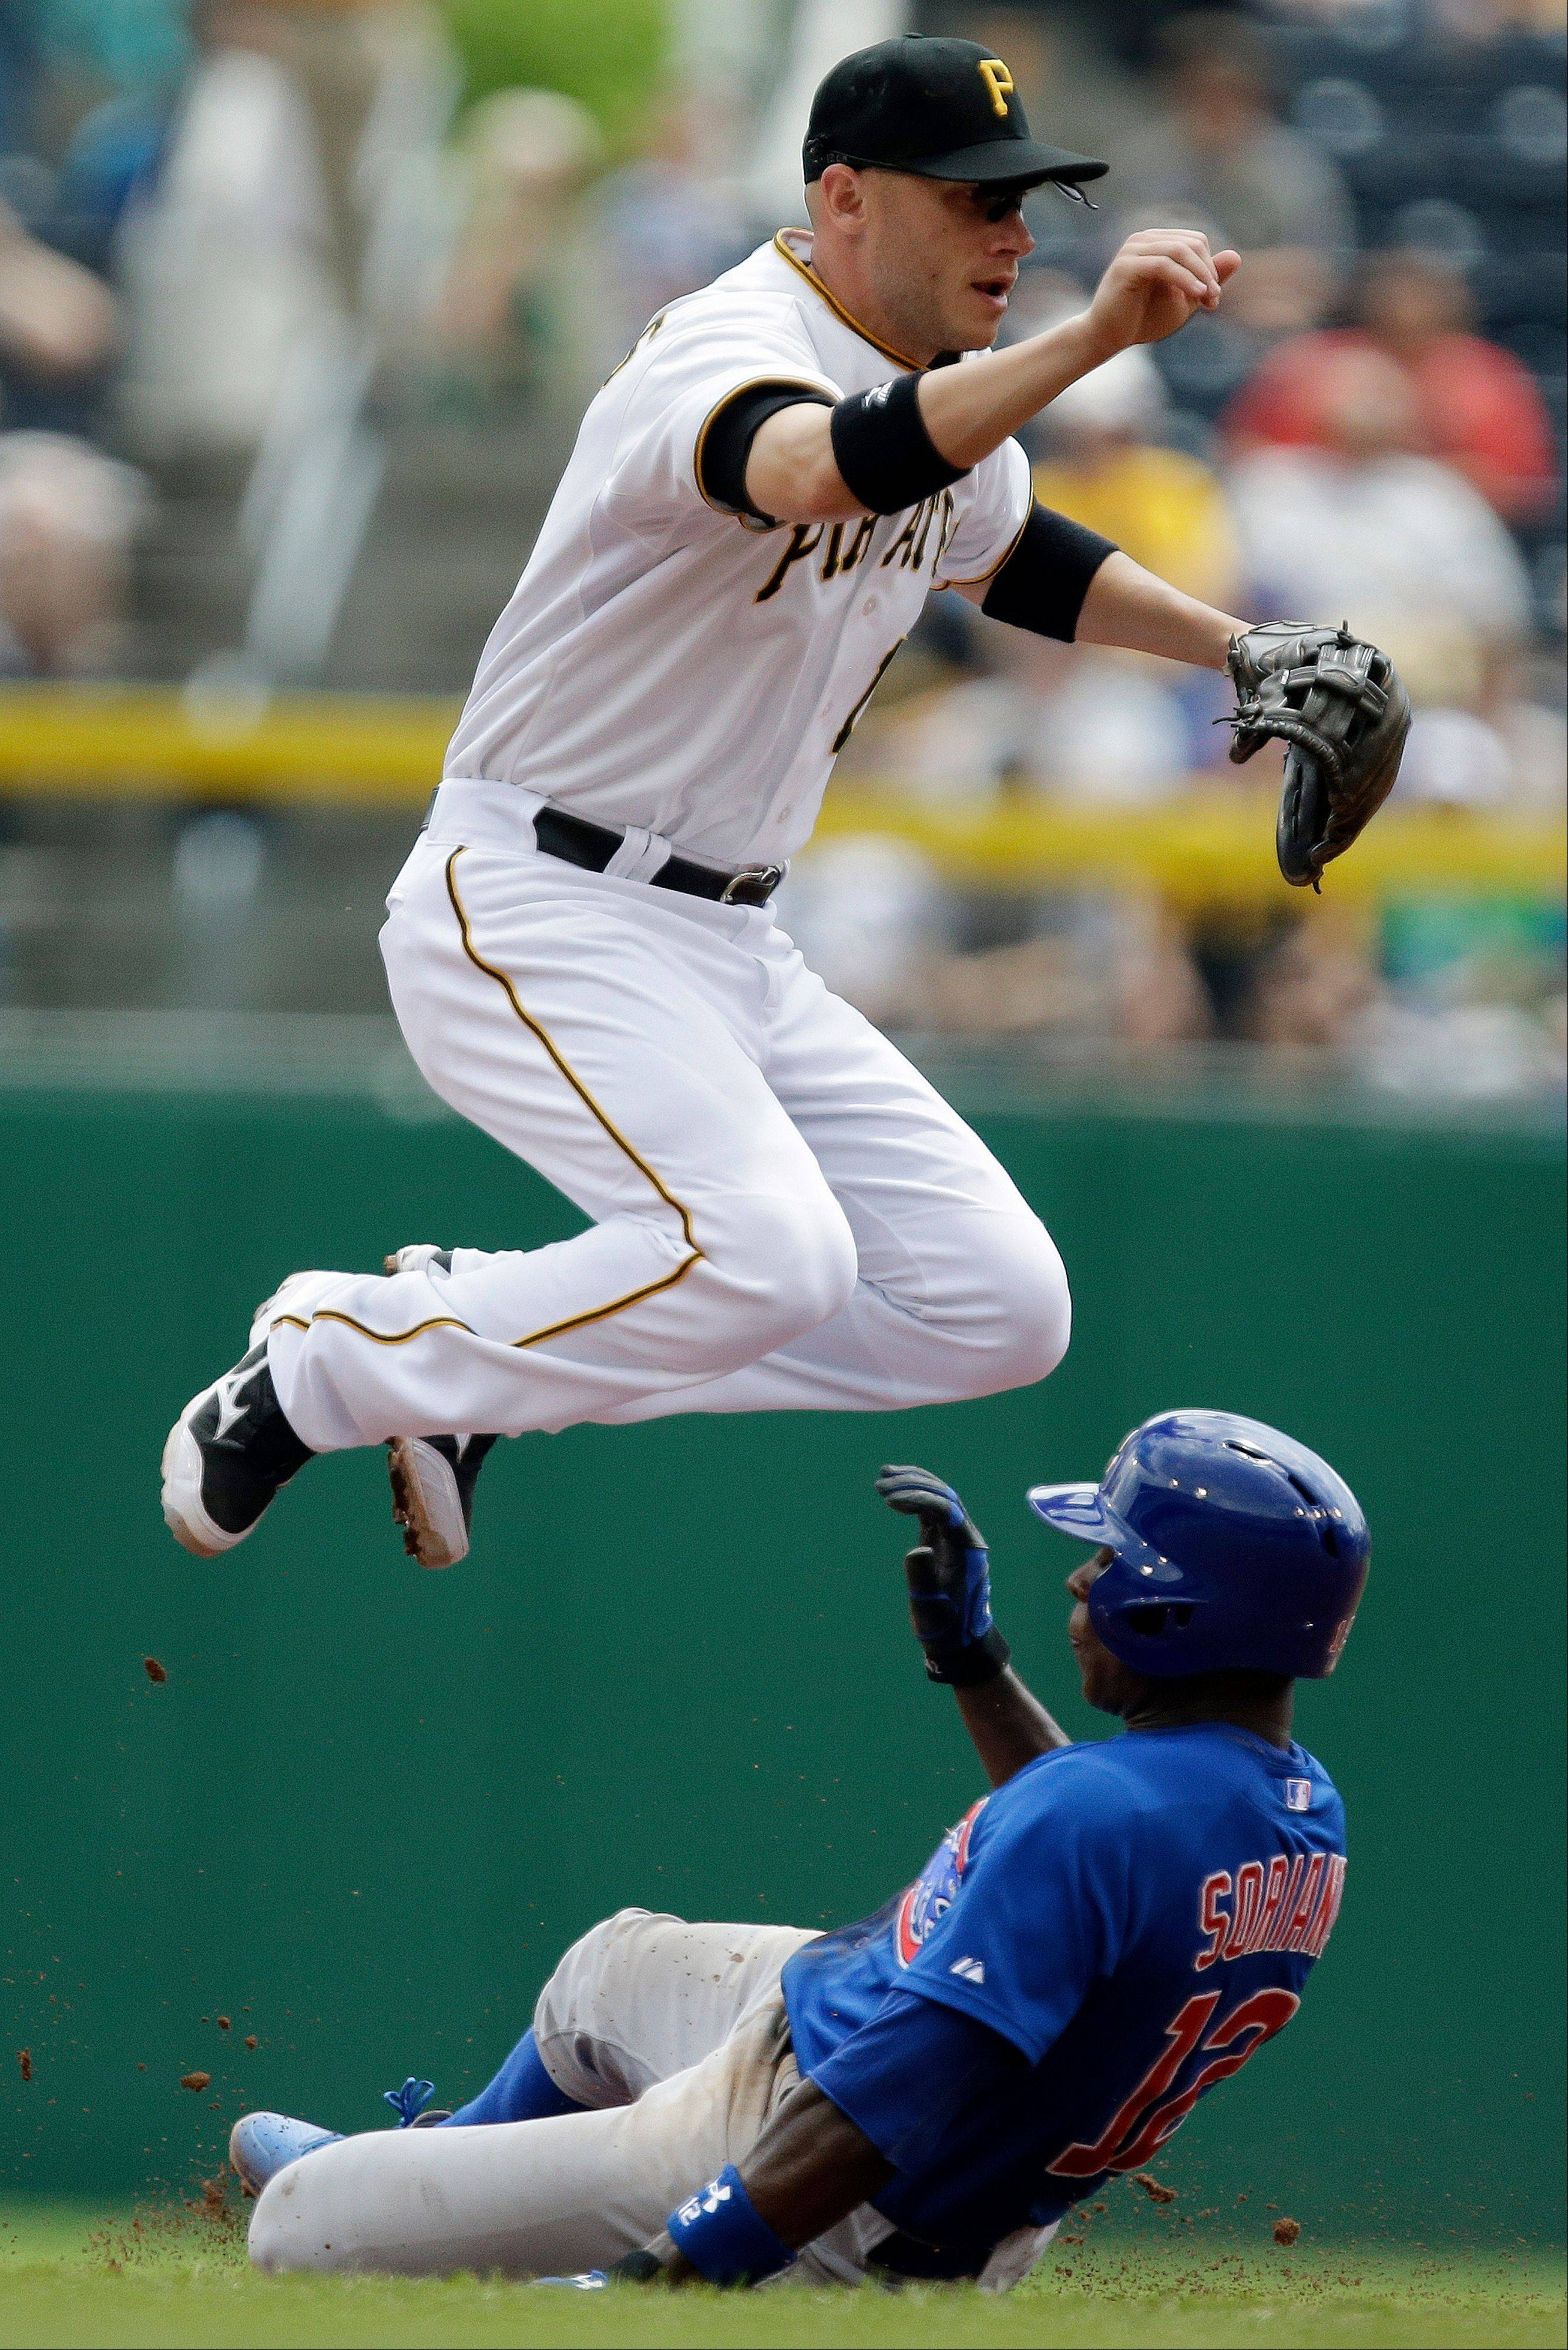 Pittsburgh Pirates shortstop Clint Barmes (12) leaps to avoid Chicago Cubs' Alfonso Soriano (12) at second base while turning a double play on the Cubs' Nate Schlerholtz at first base during the second inning of a baseball game in Pittsburgh, Thursday, May 23, 2013. (AP Photo/Gene J. Puskar)